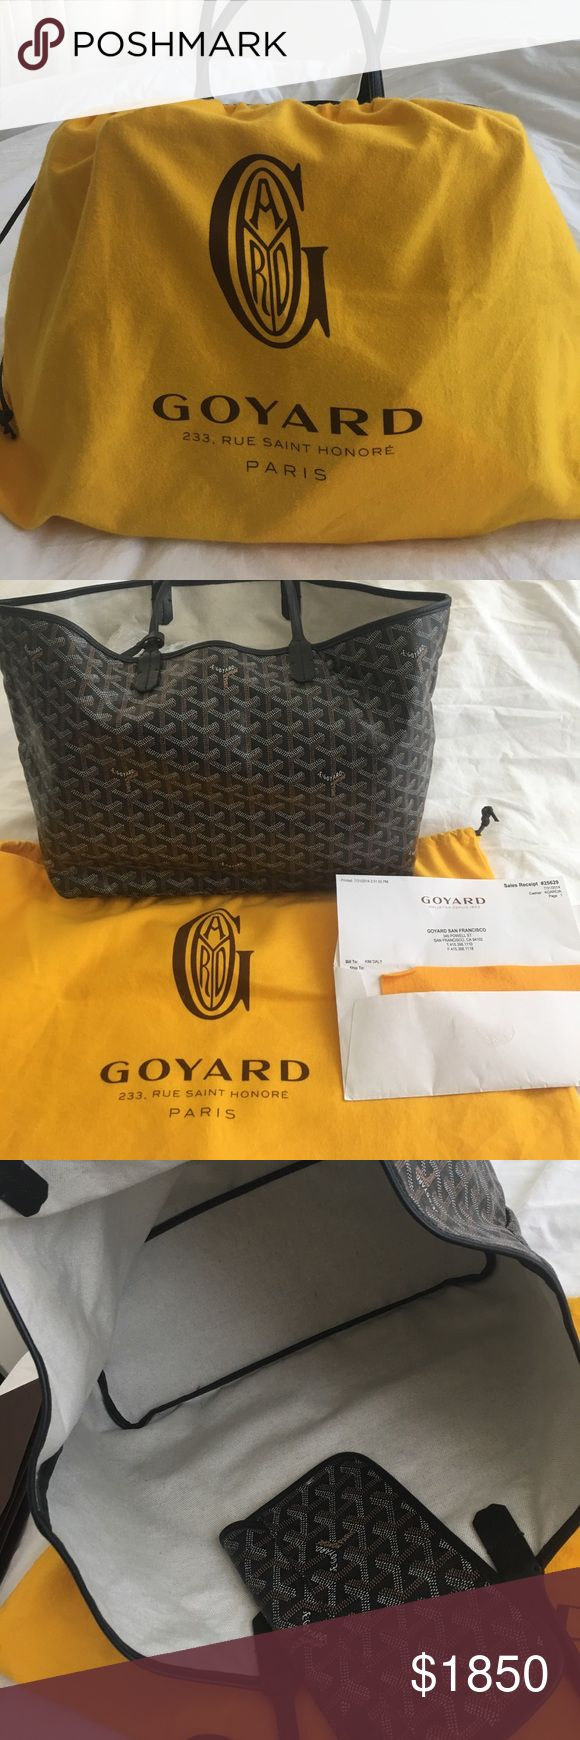 💯Authentic Goyard St Louis PM Cabas  reversible. This is a 💯💯💯💯💯Authentic Goyard. Originally purchased in San Francisco when they have the Goyard boutique. I bough this but honestly did not use at all. No scratches, no marks and again, BRAND new. See photos of authenticity. Prices is going up on Goyard because it's hard to find. I have another Goyard but used. This one, not  all. FOR TRADE Goyard Bags Totes